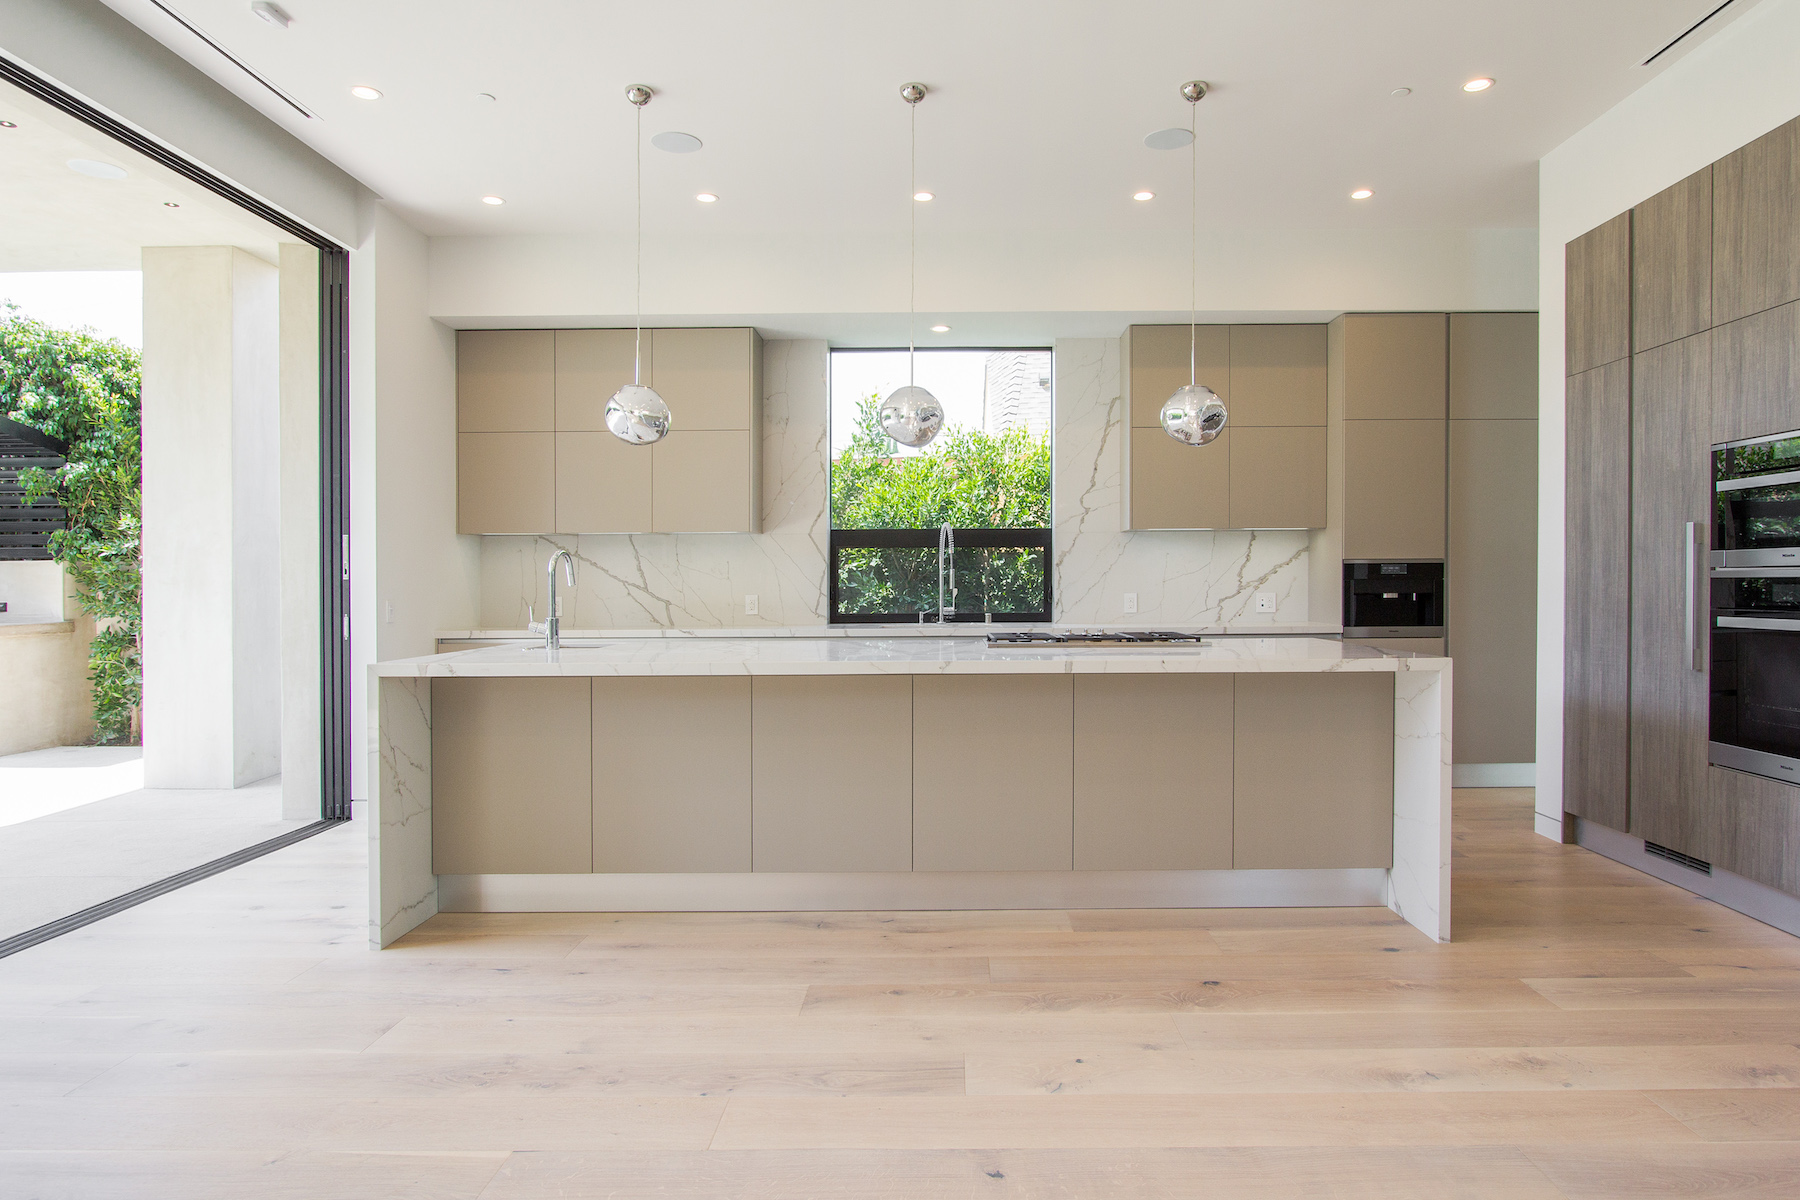 WestHollywood_Modern_2_sm